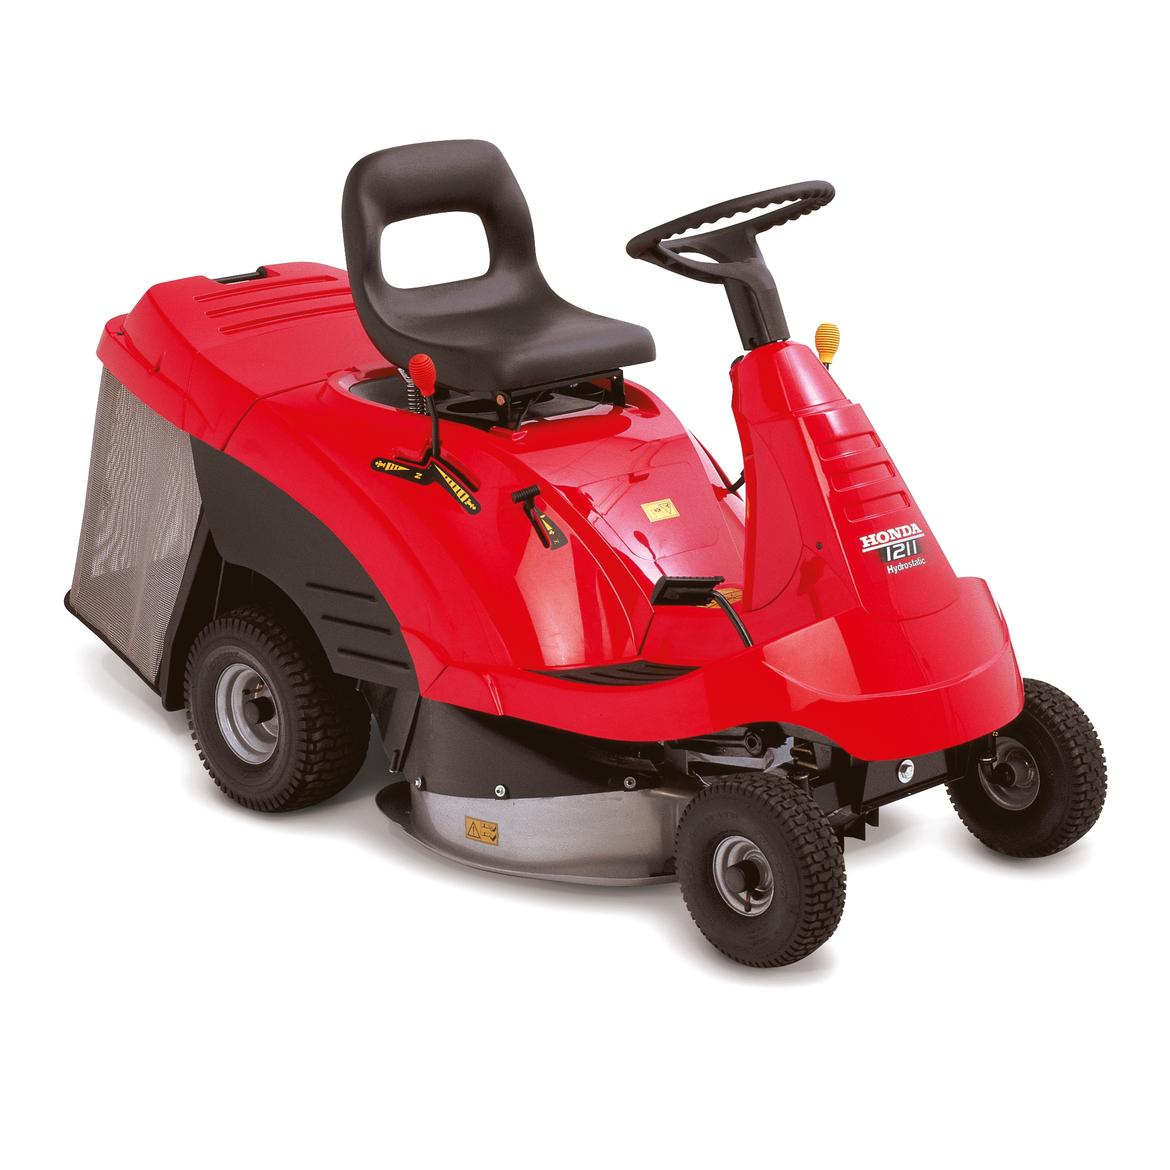 Ride On Mower >> Honda Hf1211h Ride On Mower